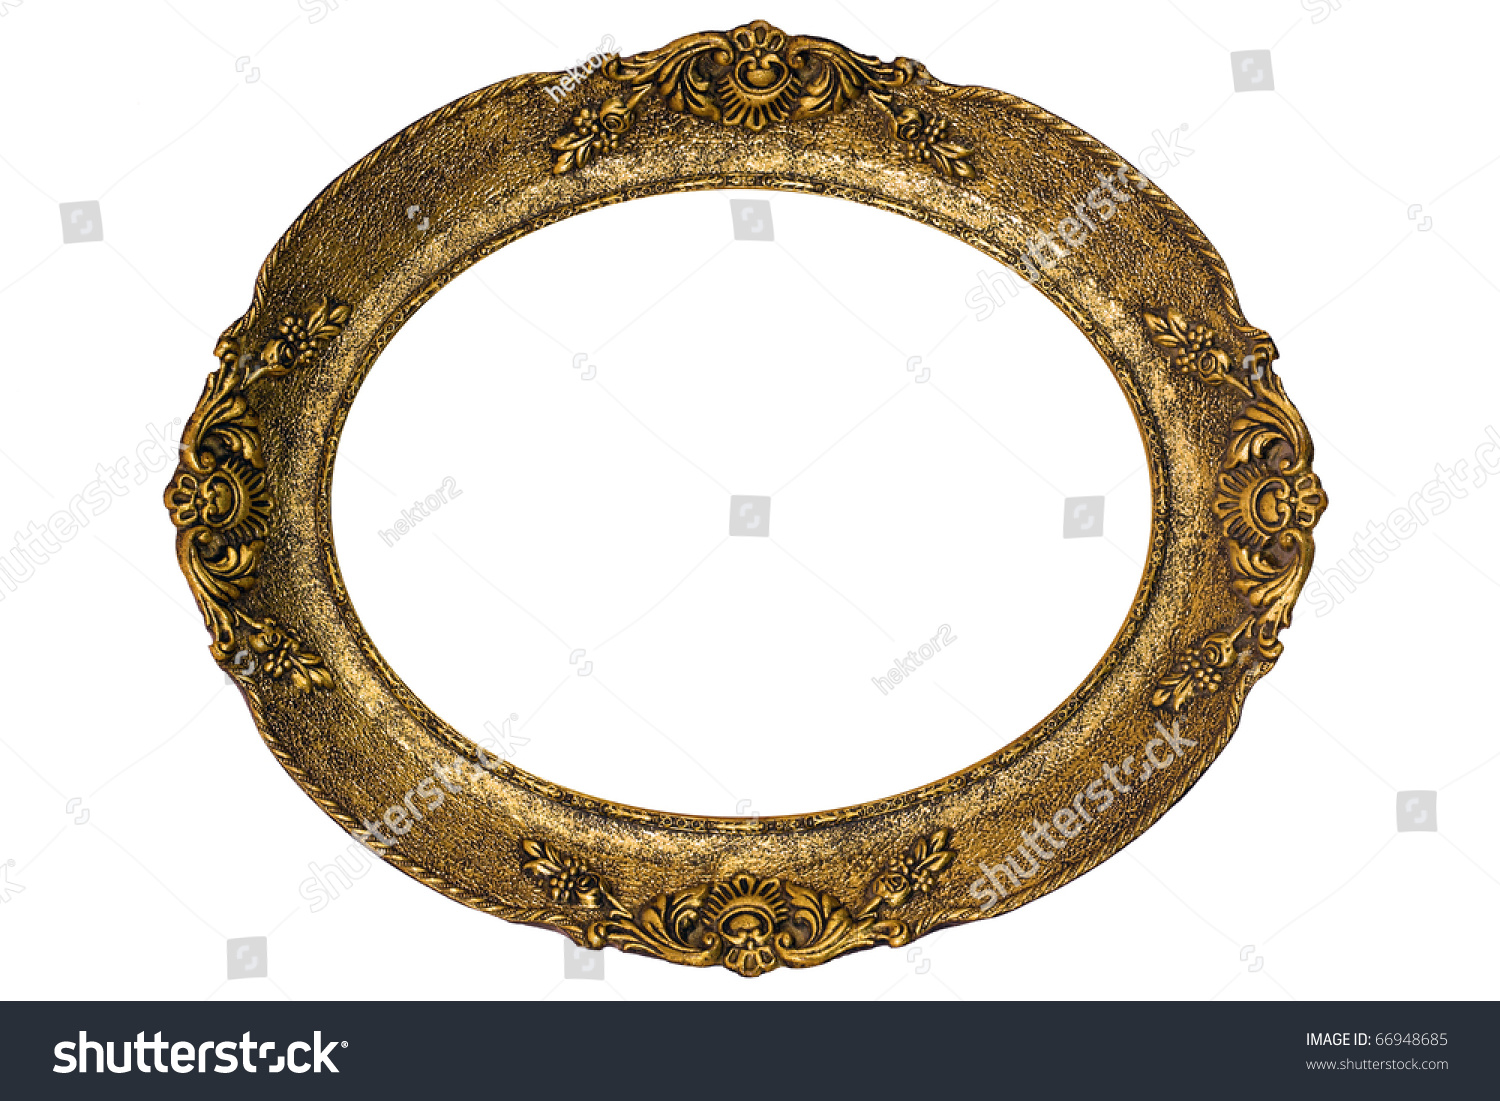 Massive Old Golden Frame High Resolution Stock Photo (Edit Now ...